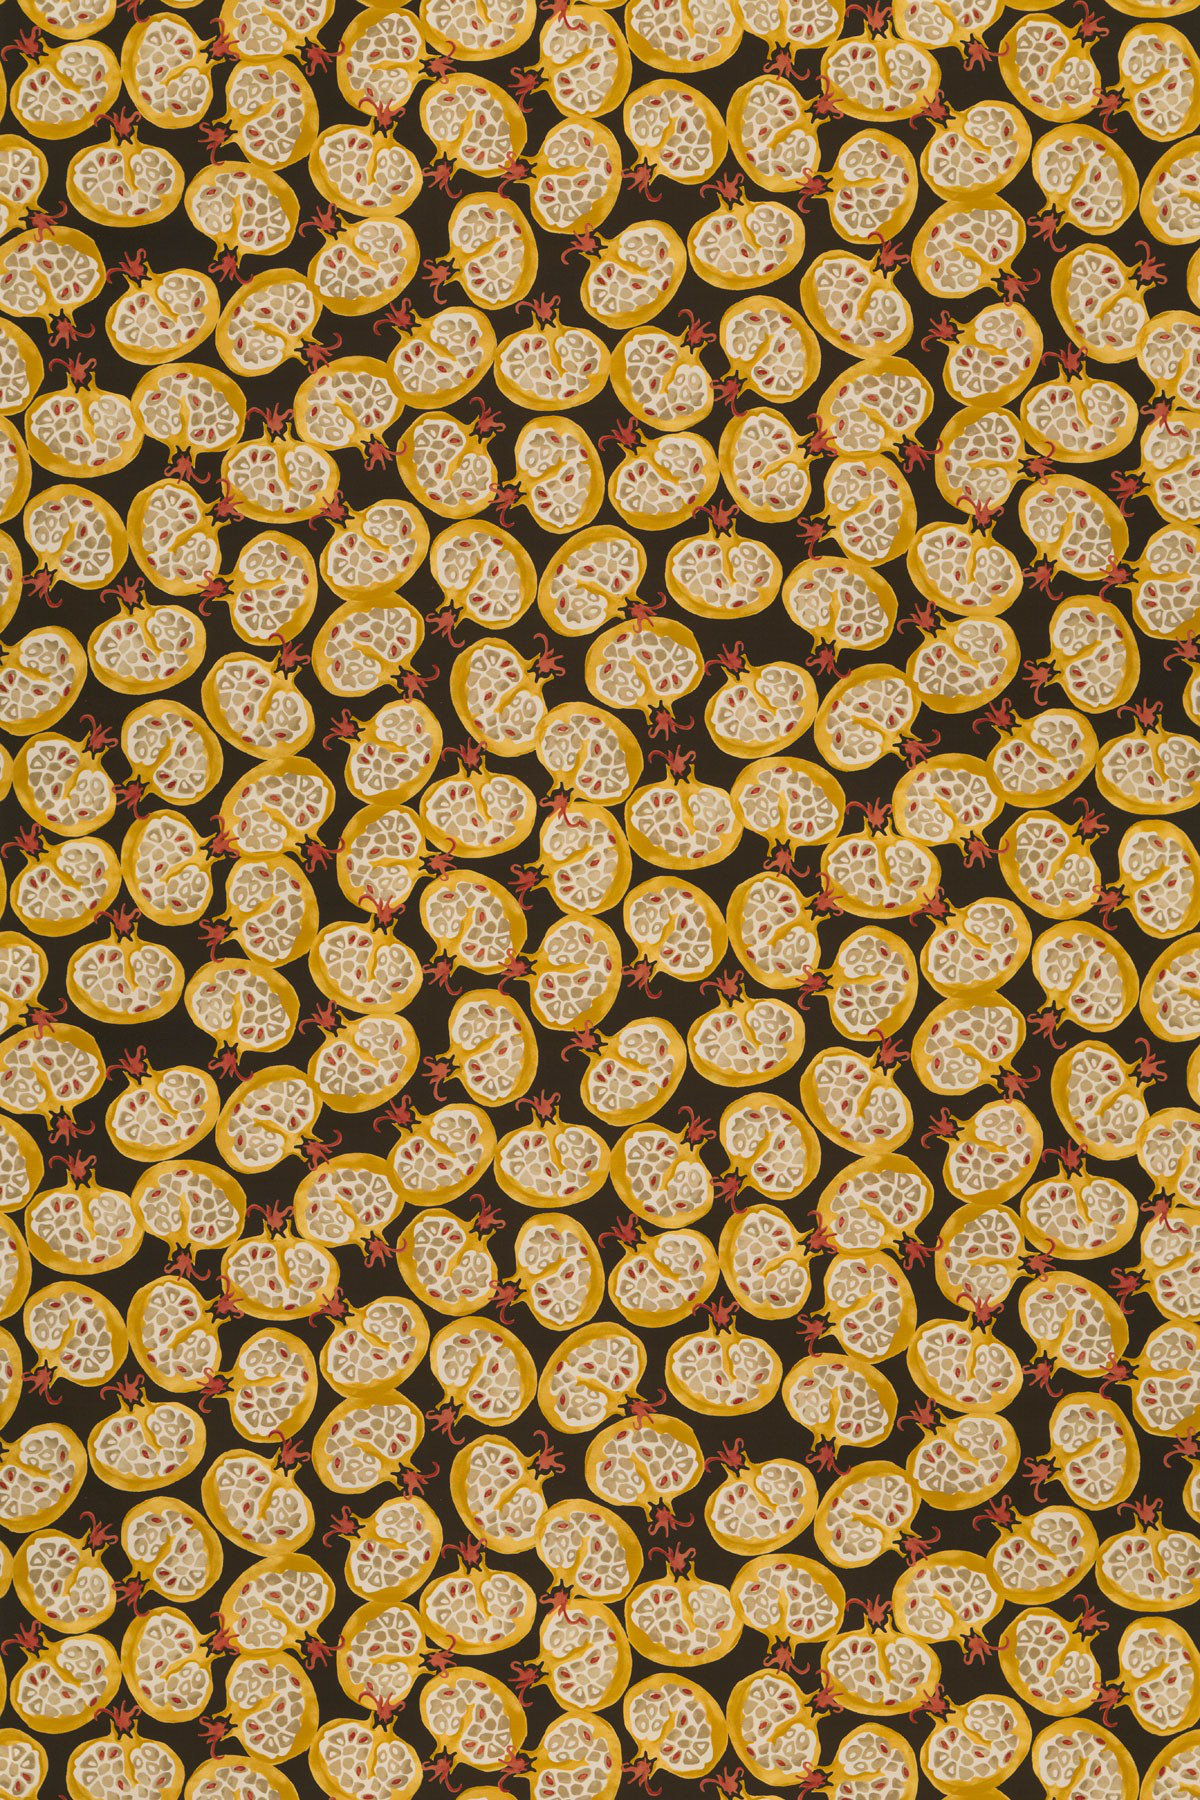 Image of Emma Bridgewater Fabric Pomegranate Black/Ochre, 223429